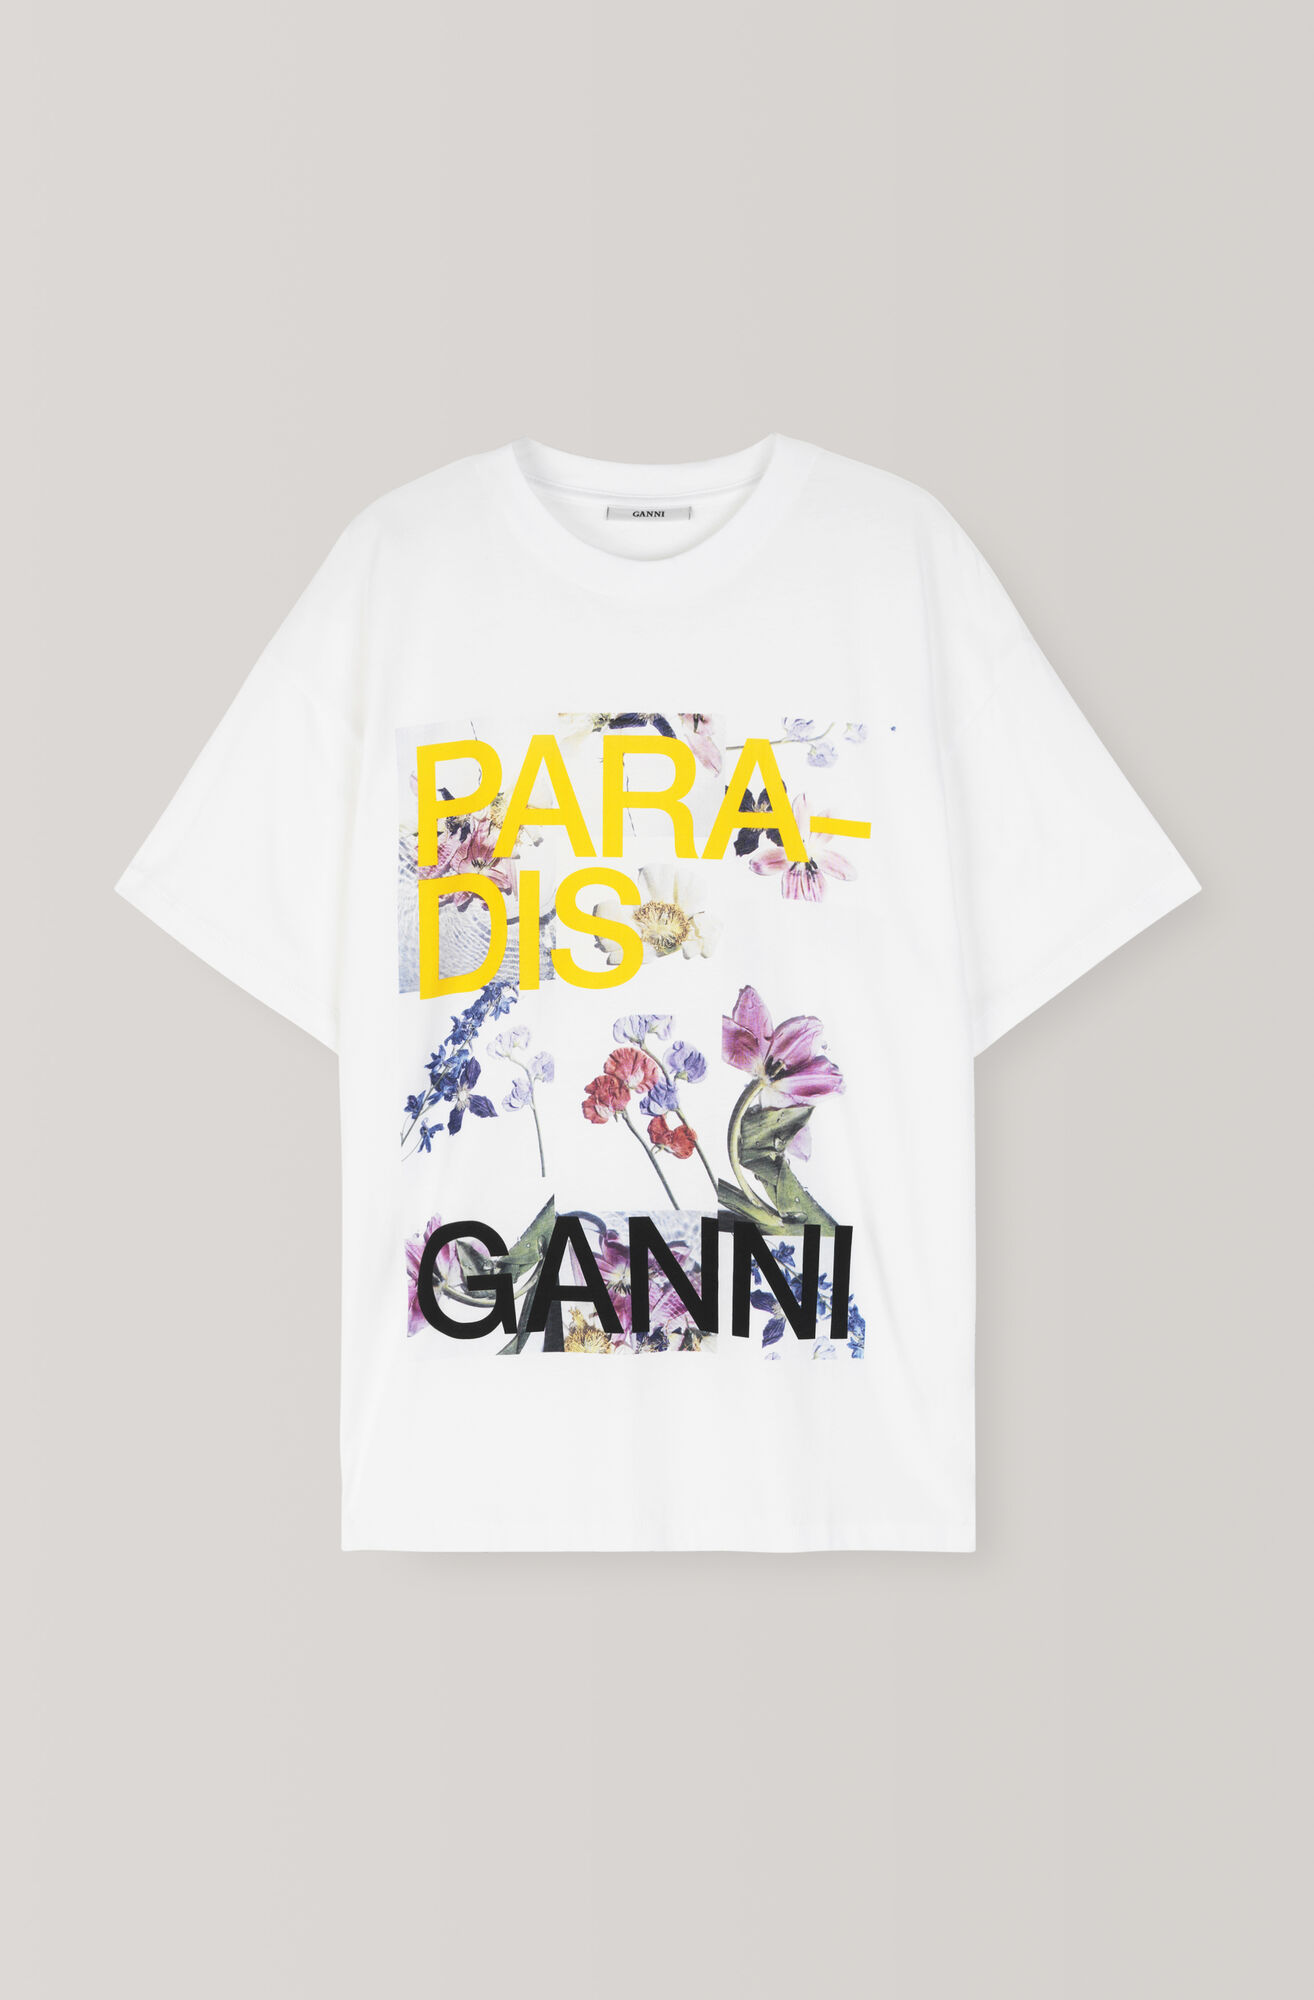 Oversized Light Cotton Jersey T-shirt, Paradis, Bright White, hi-res